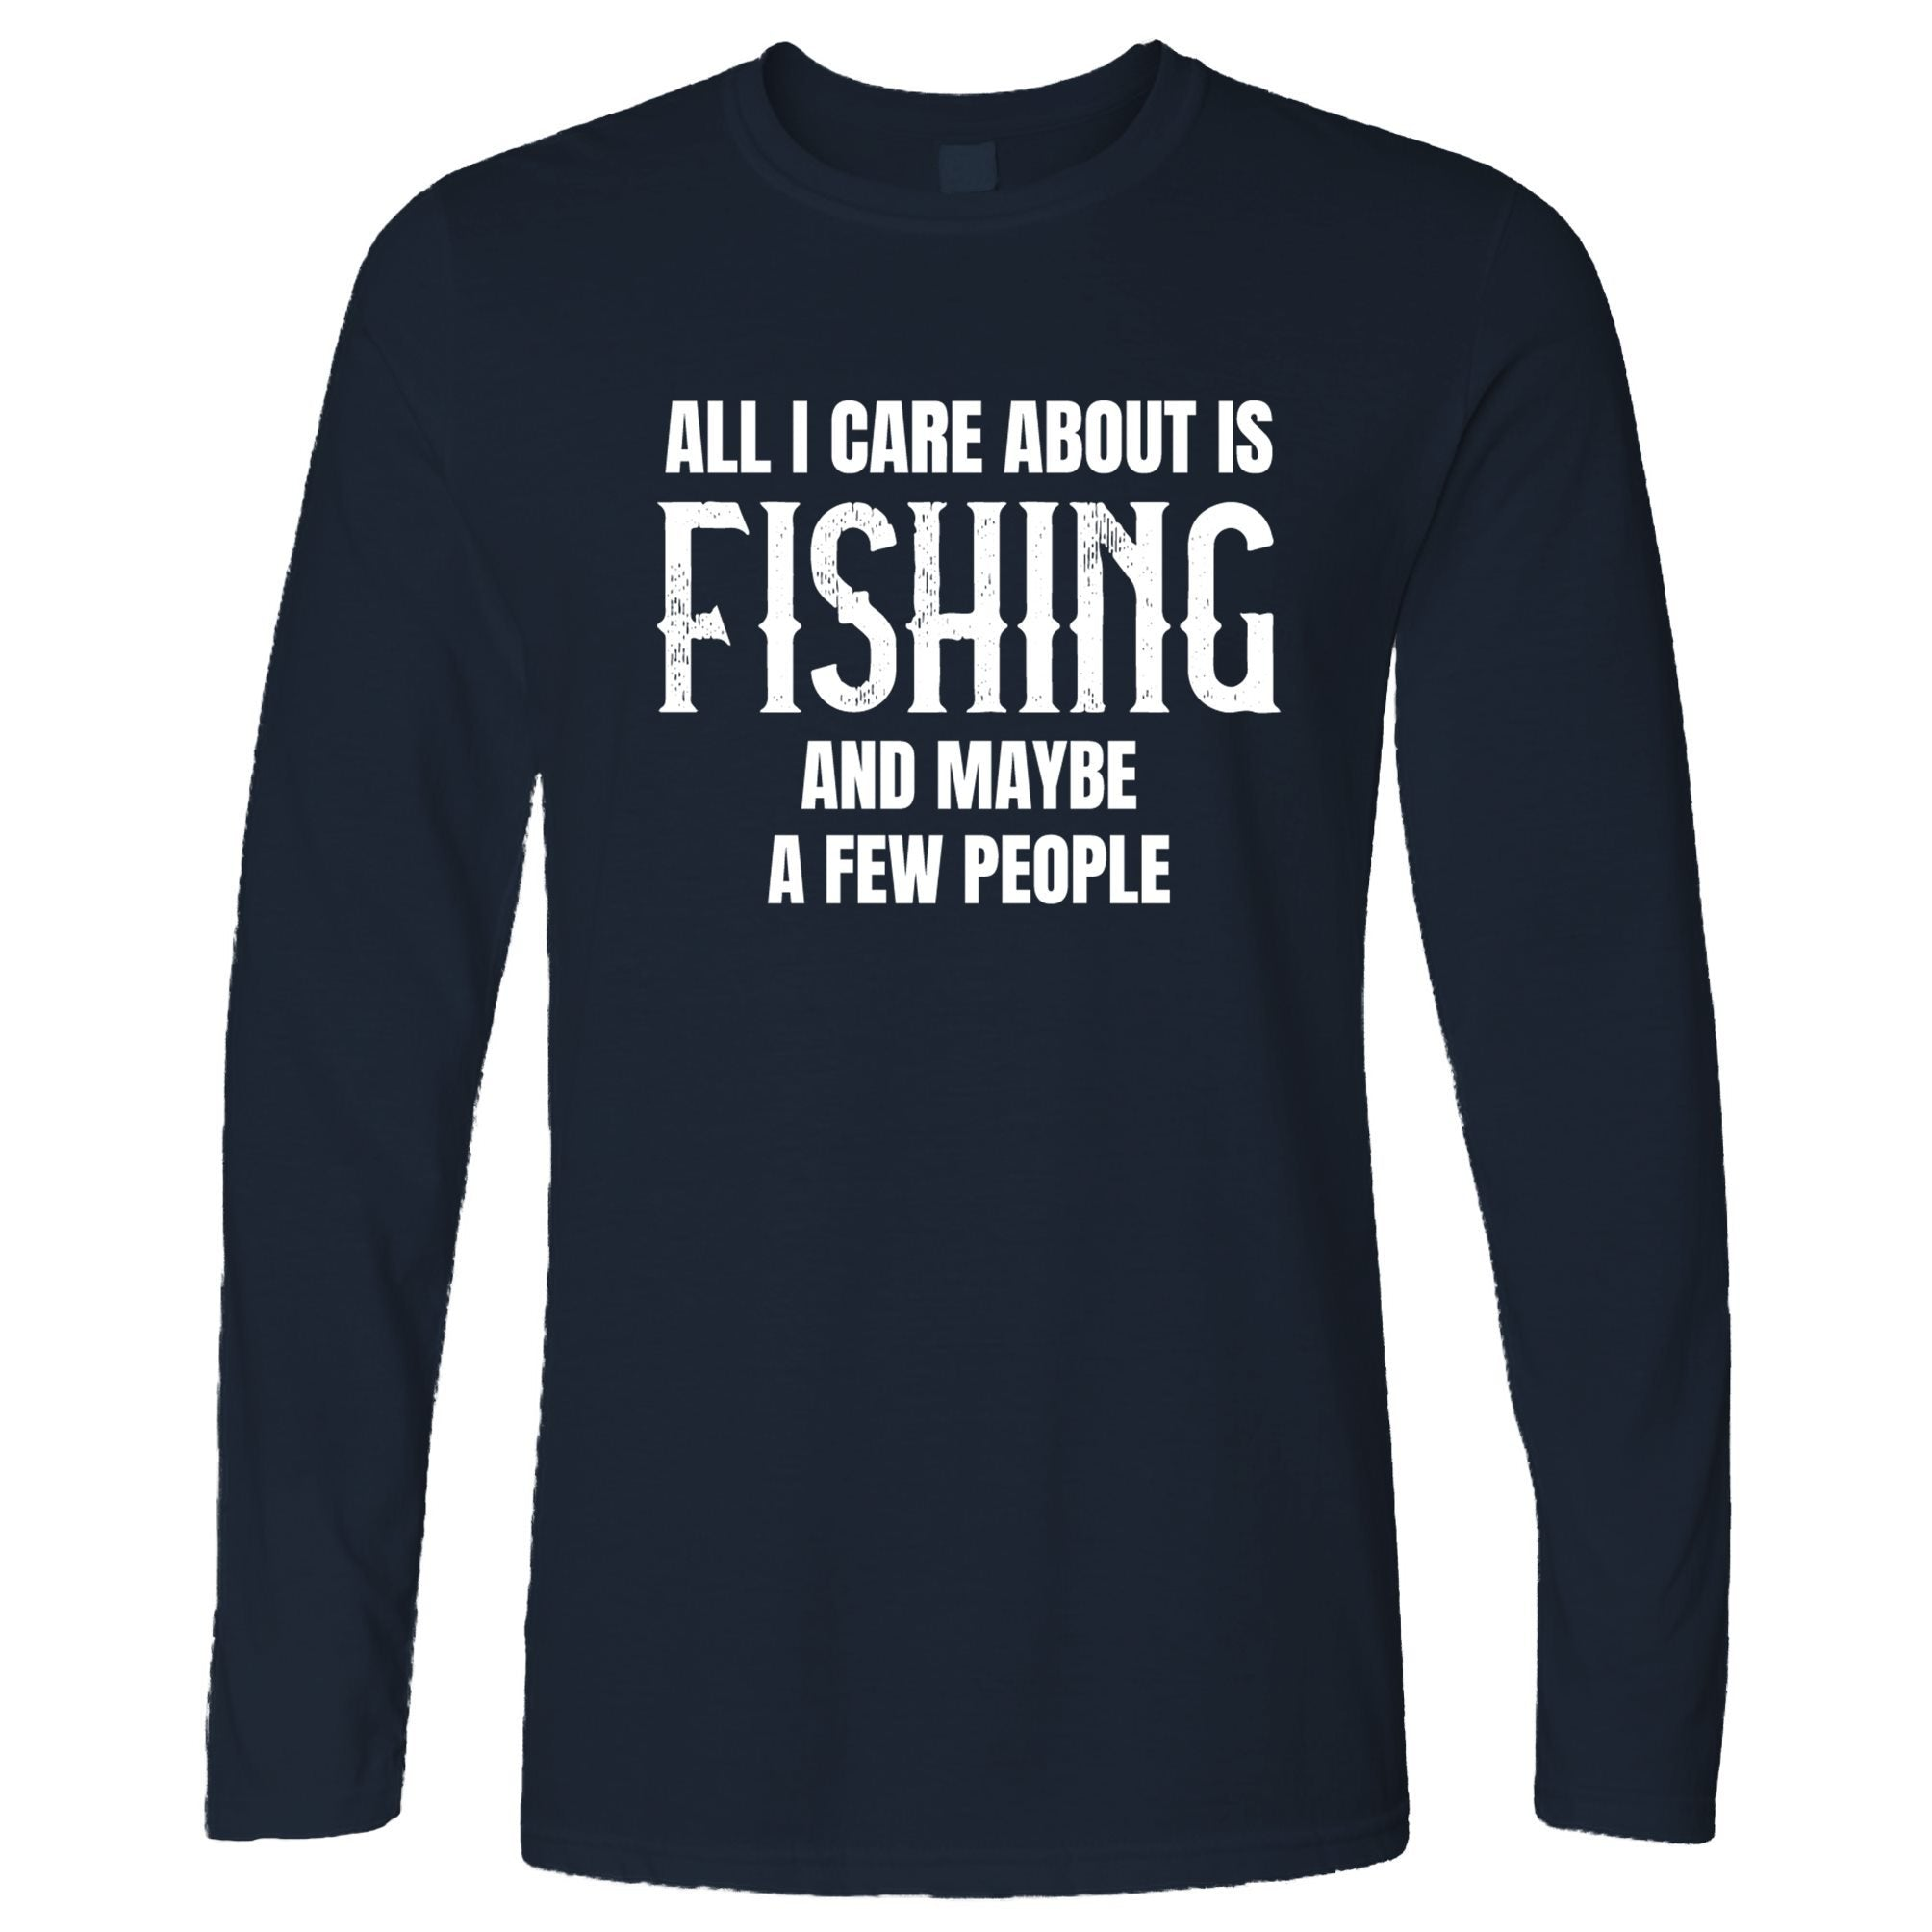 Novelty Long Sleeve All I Care About Is Fishing T-Shirt